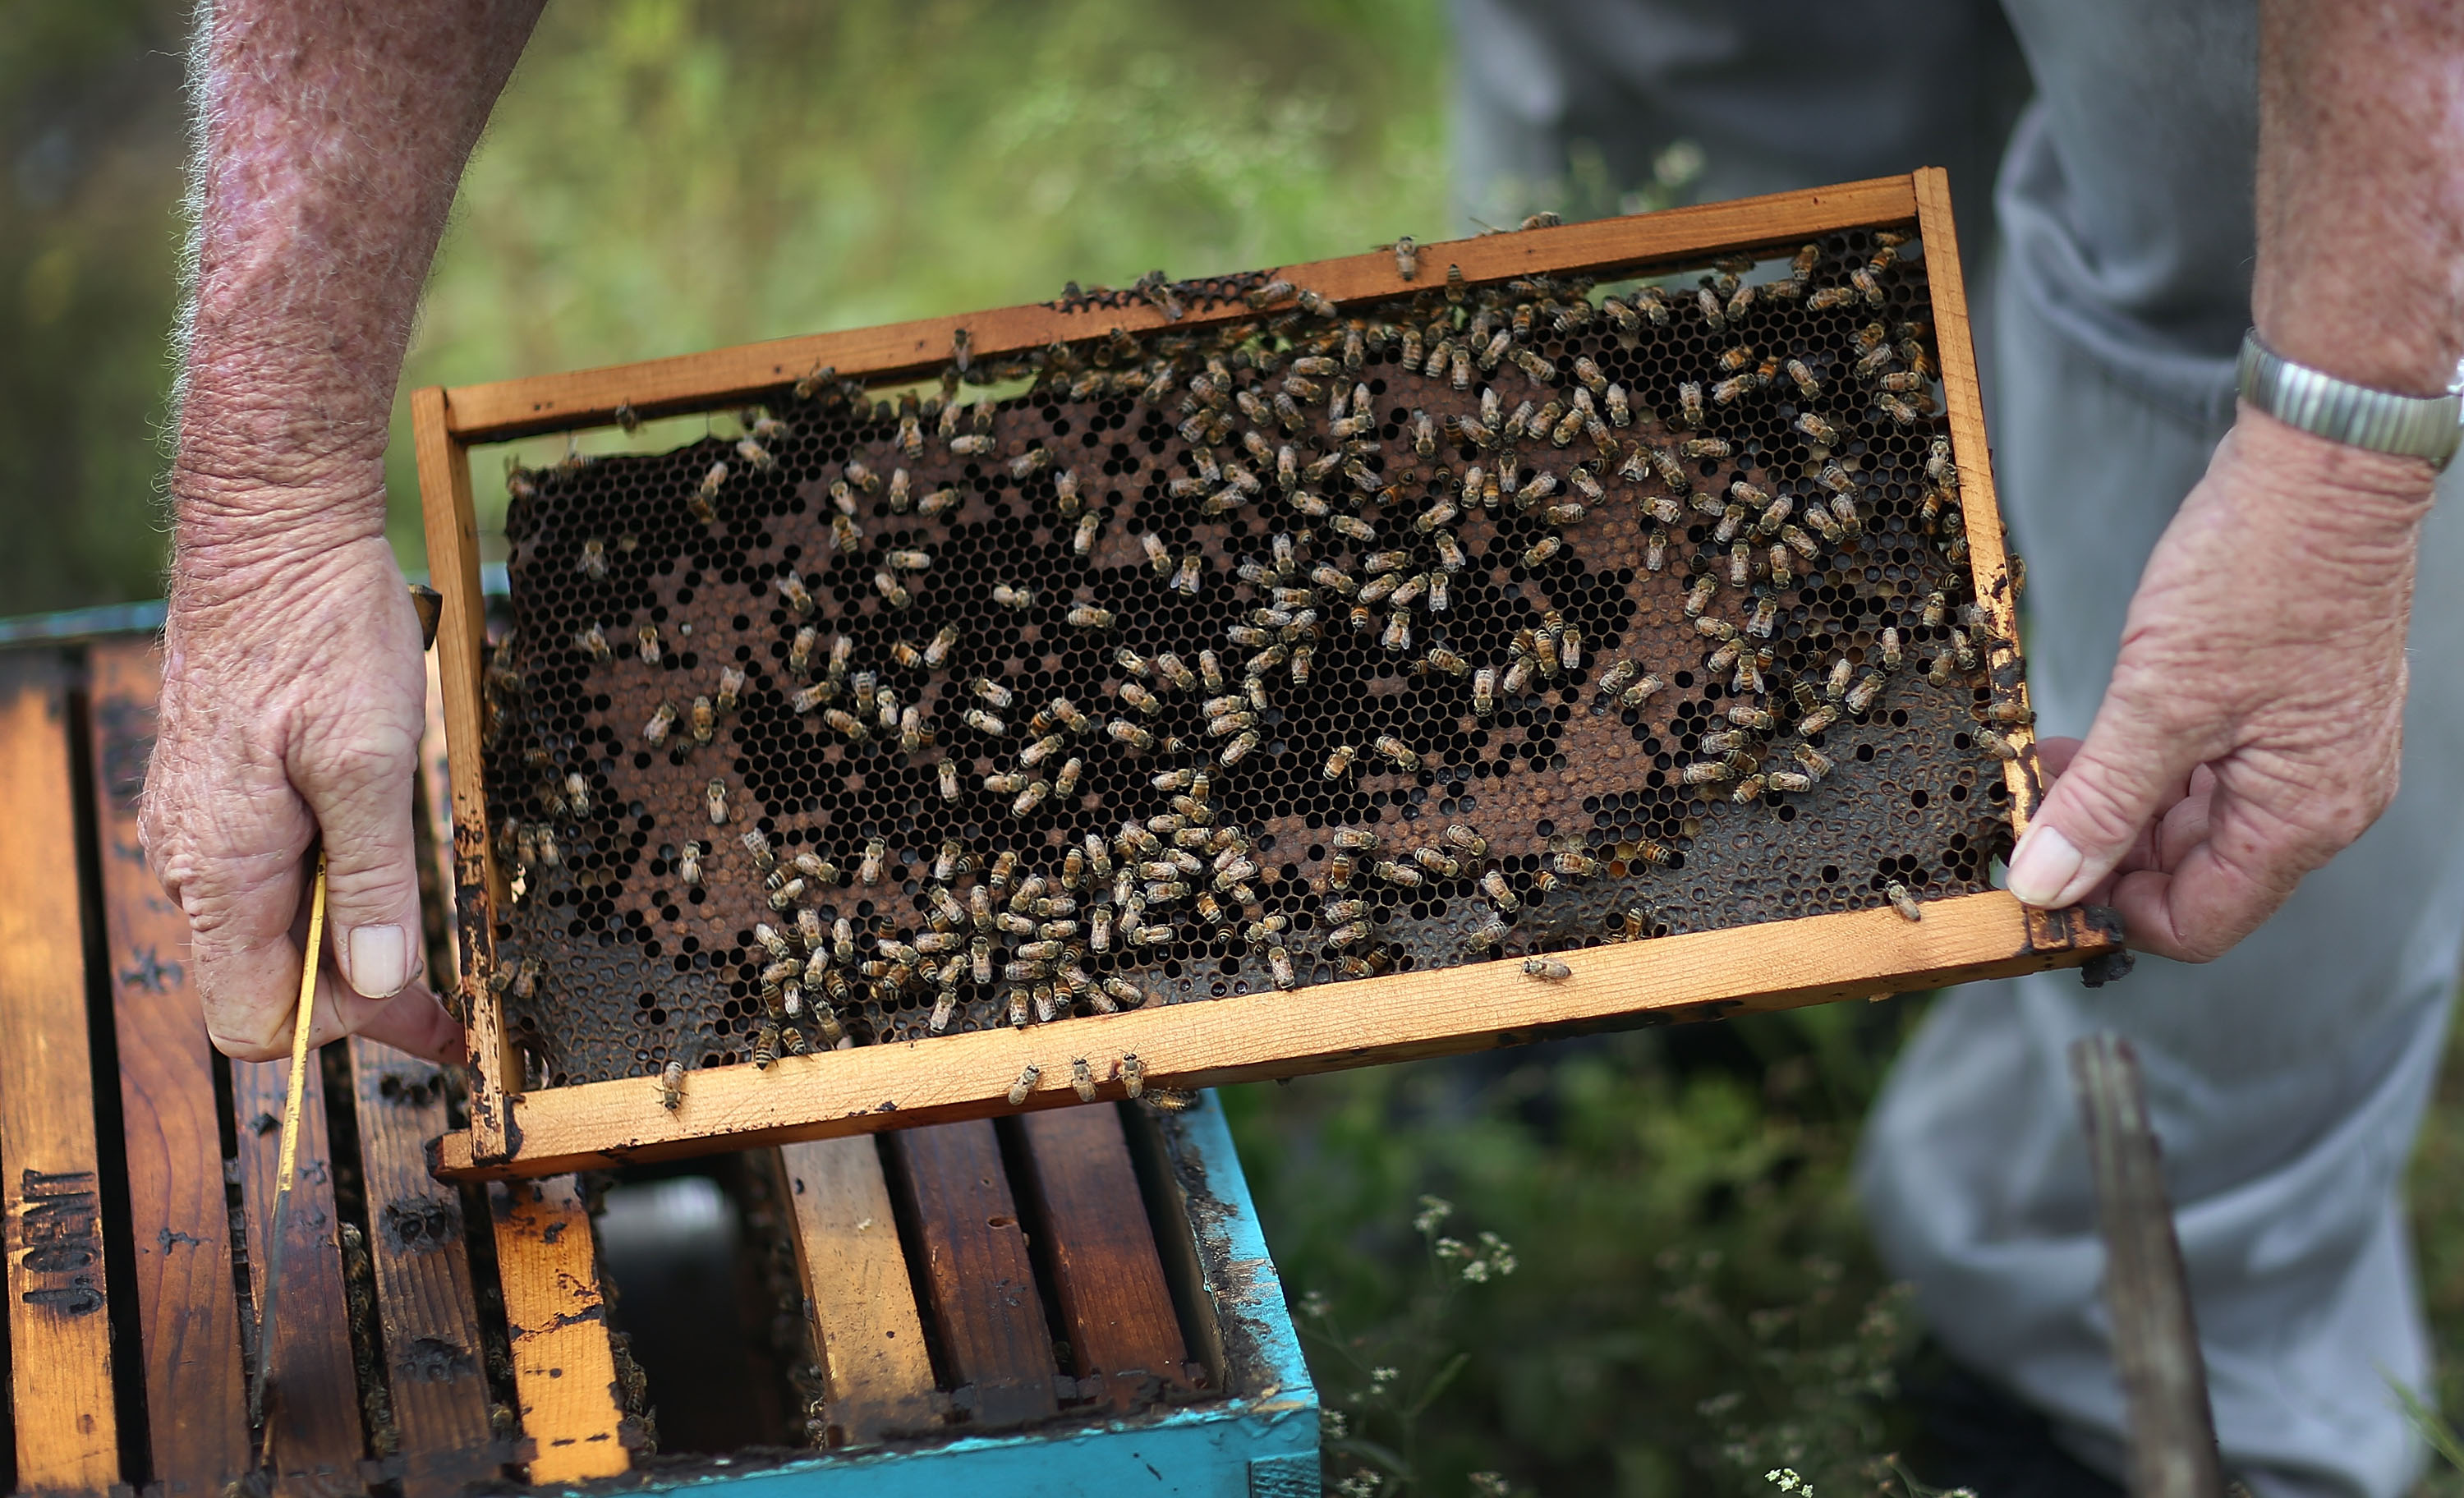 John Gentzel, the owner of J & P Apiary and Gentzel's Bees, Honey and Pollination Company, works with his honeybees on May 19, 2015 in Homestead, Florida. U.S. President Barack Obama's administration announced May 19, that the government would provide money for more bee habitat as well as research into ways to protect bees from disease and pesticides to reduce the honeybee colony losses that have reached alarming rates.  (Photo by Joe Raedle/Getty Images)